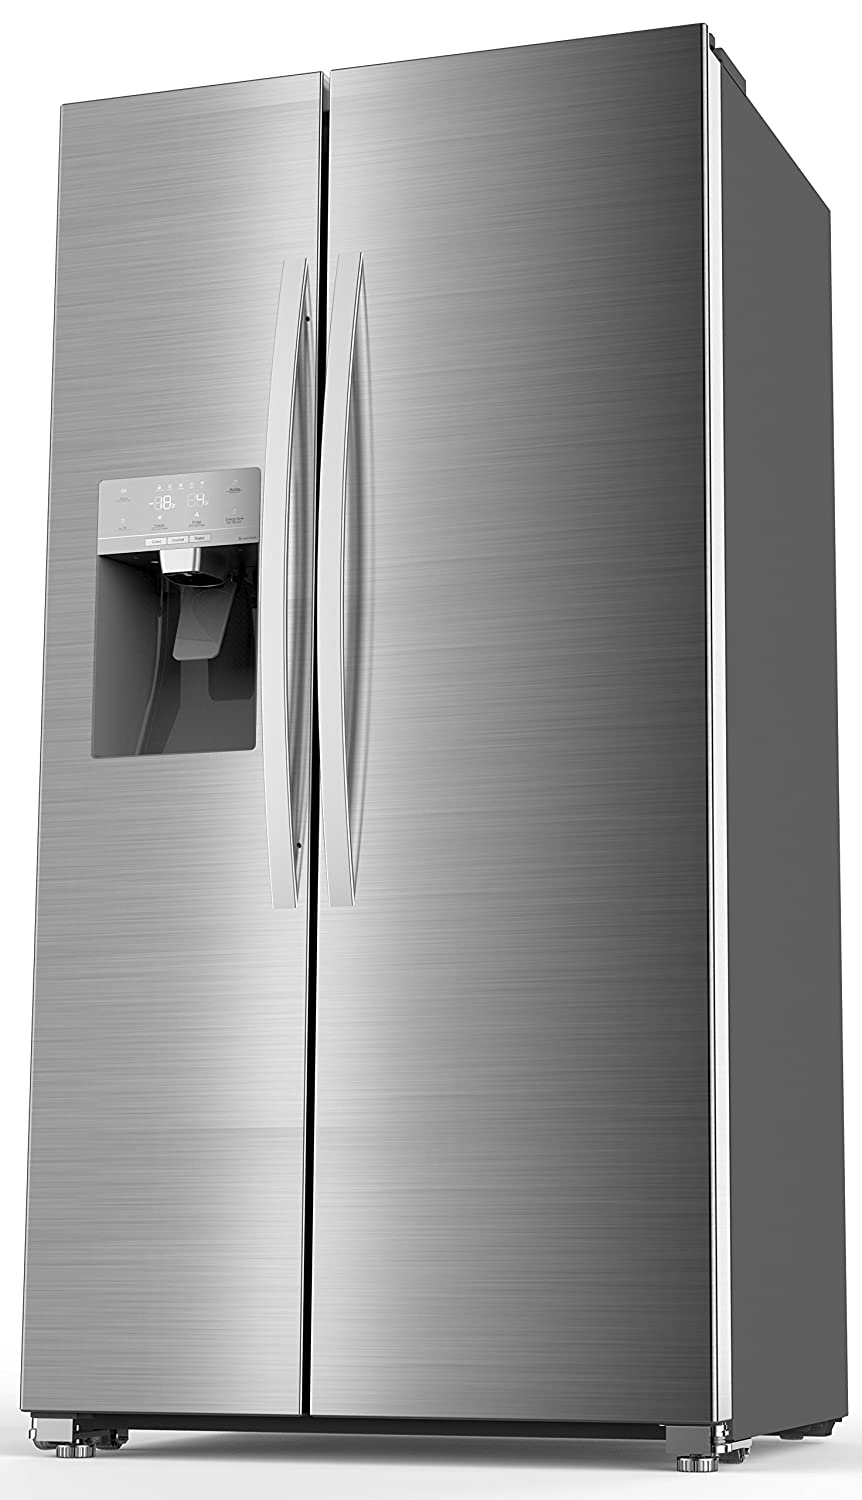 Hisense SBS 535 A++ ELIW Side-by-Side / 178.6 cm Höhe / 345 kWh ...